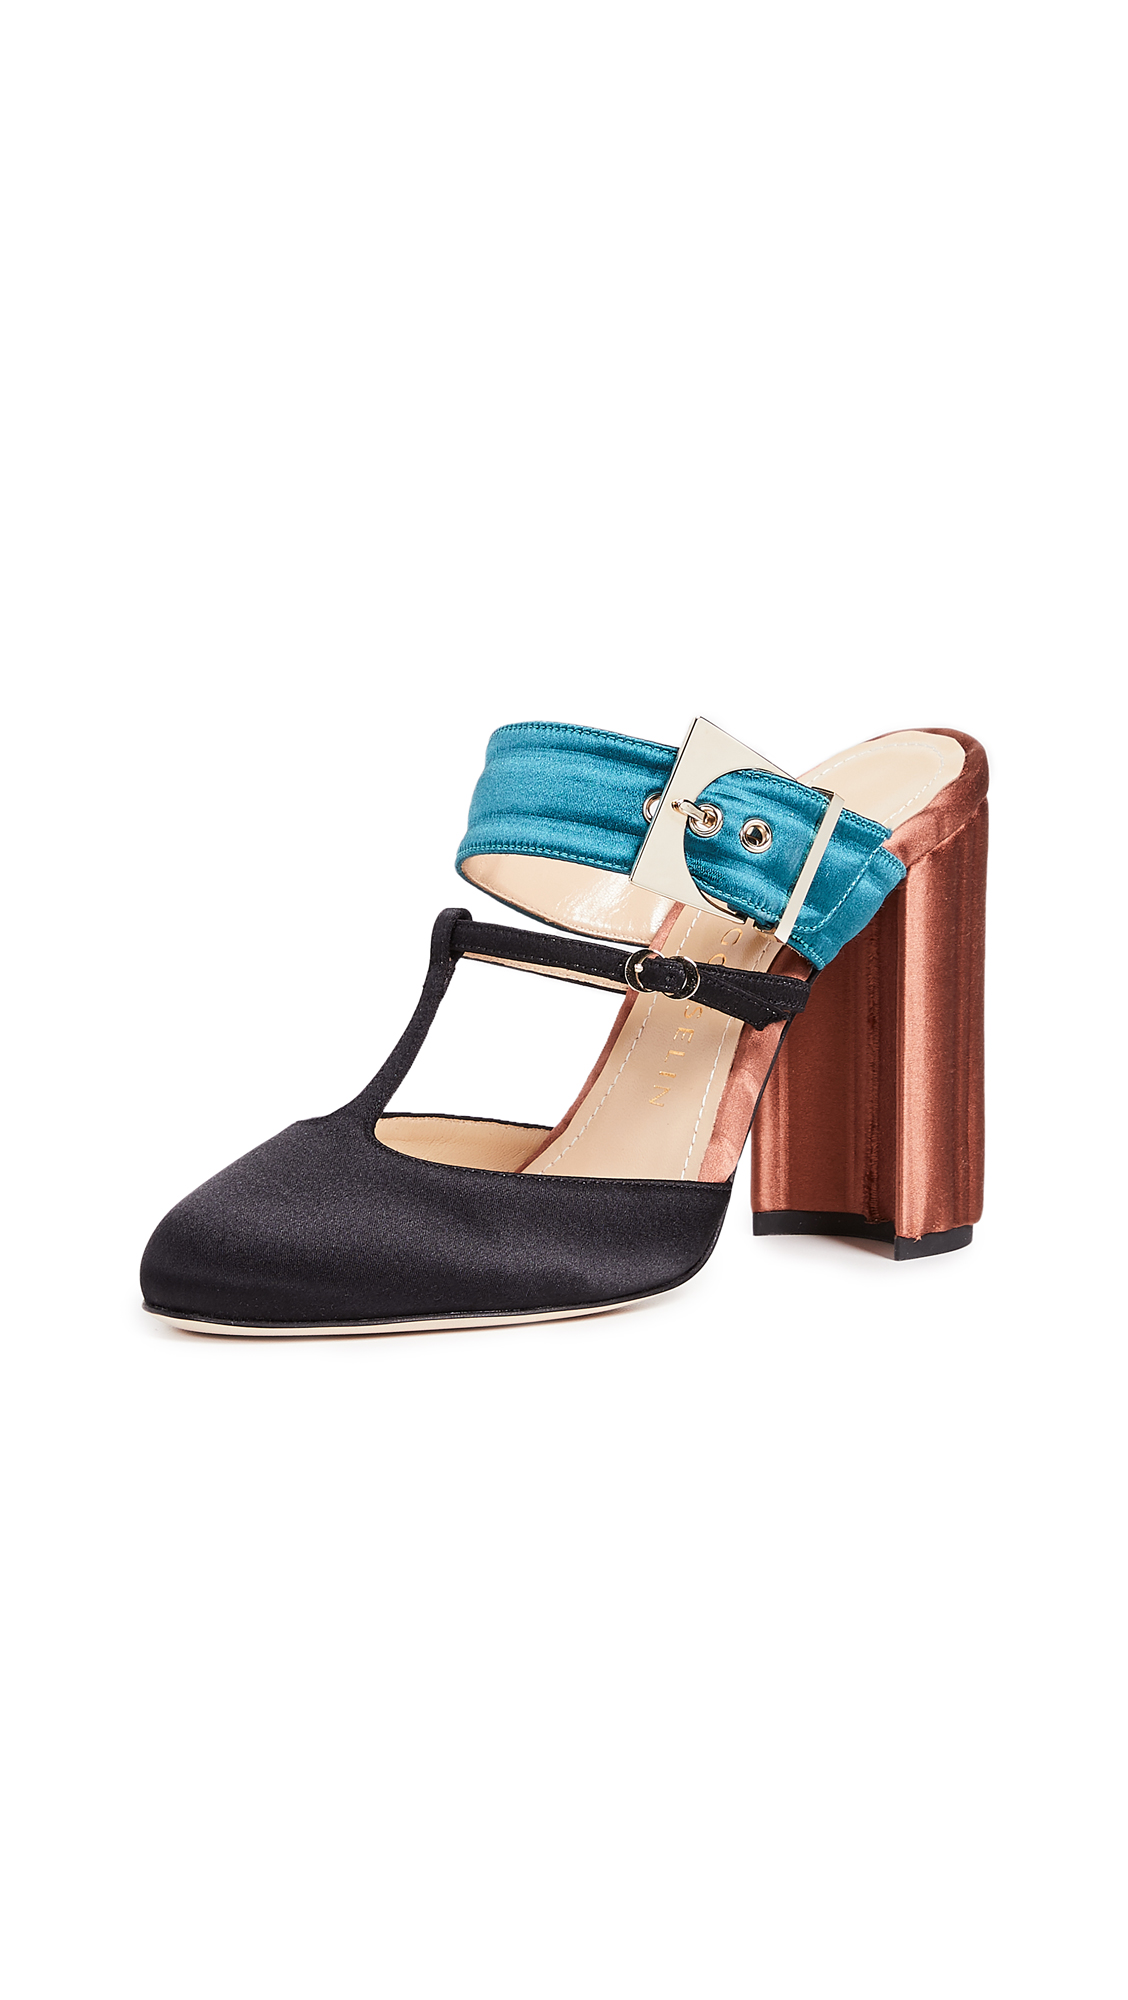 Chloe Gosselin Olympe Mules - Teal/Orange